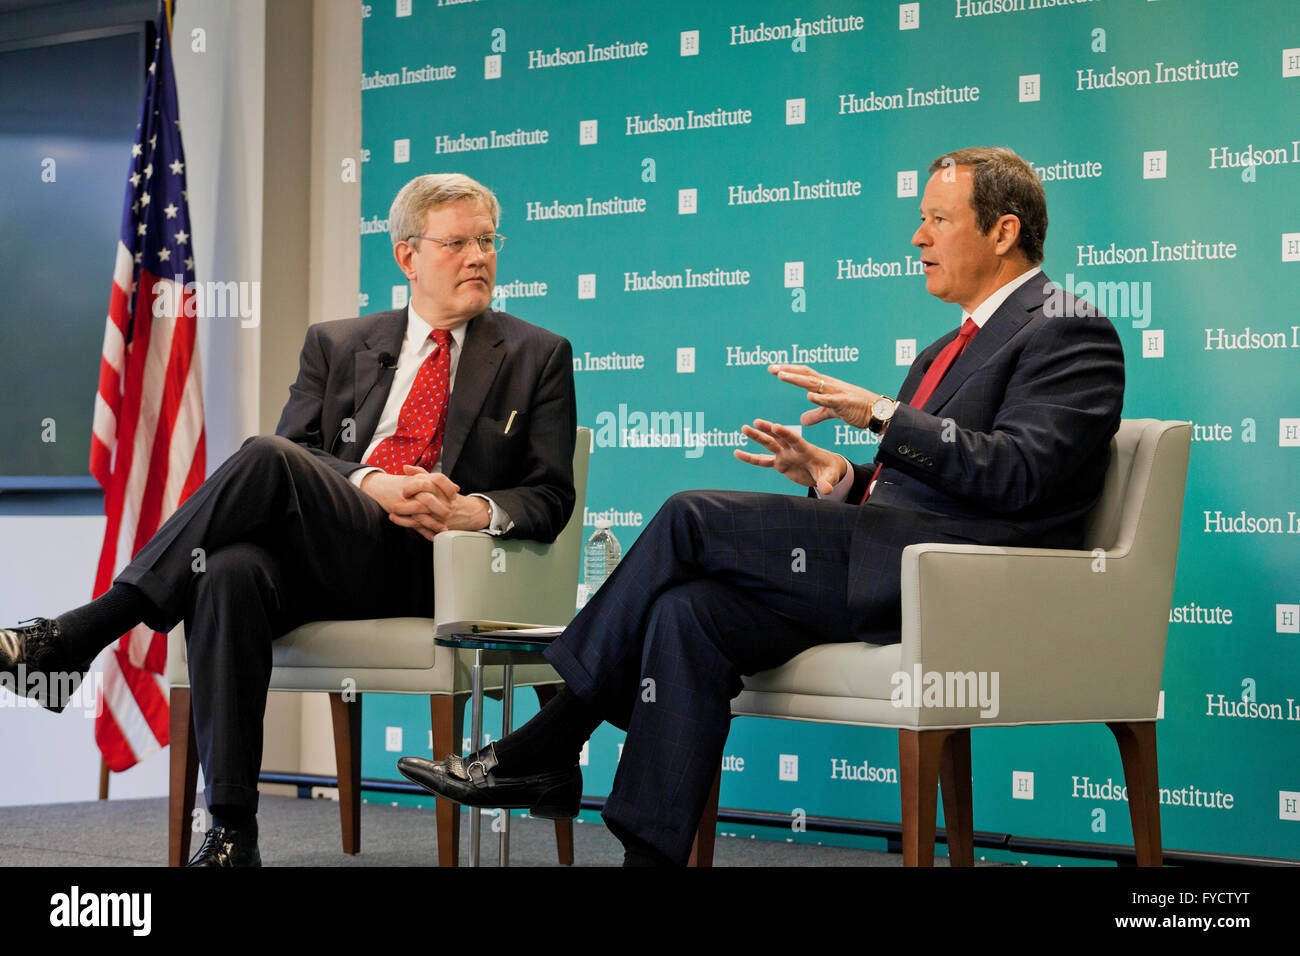 Alan Dabbiere, Chairman, Wandering Wifi and founder of AirWatch, speaking at Hudson Institute, Washington, DC USA - Stock Image